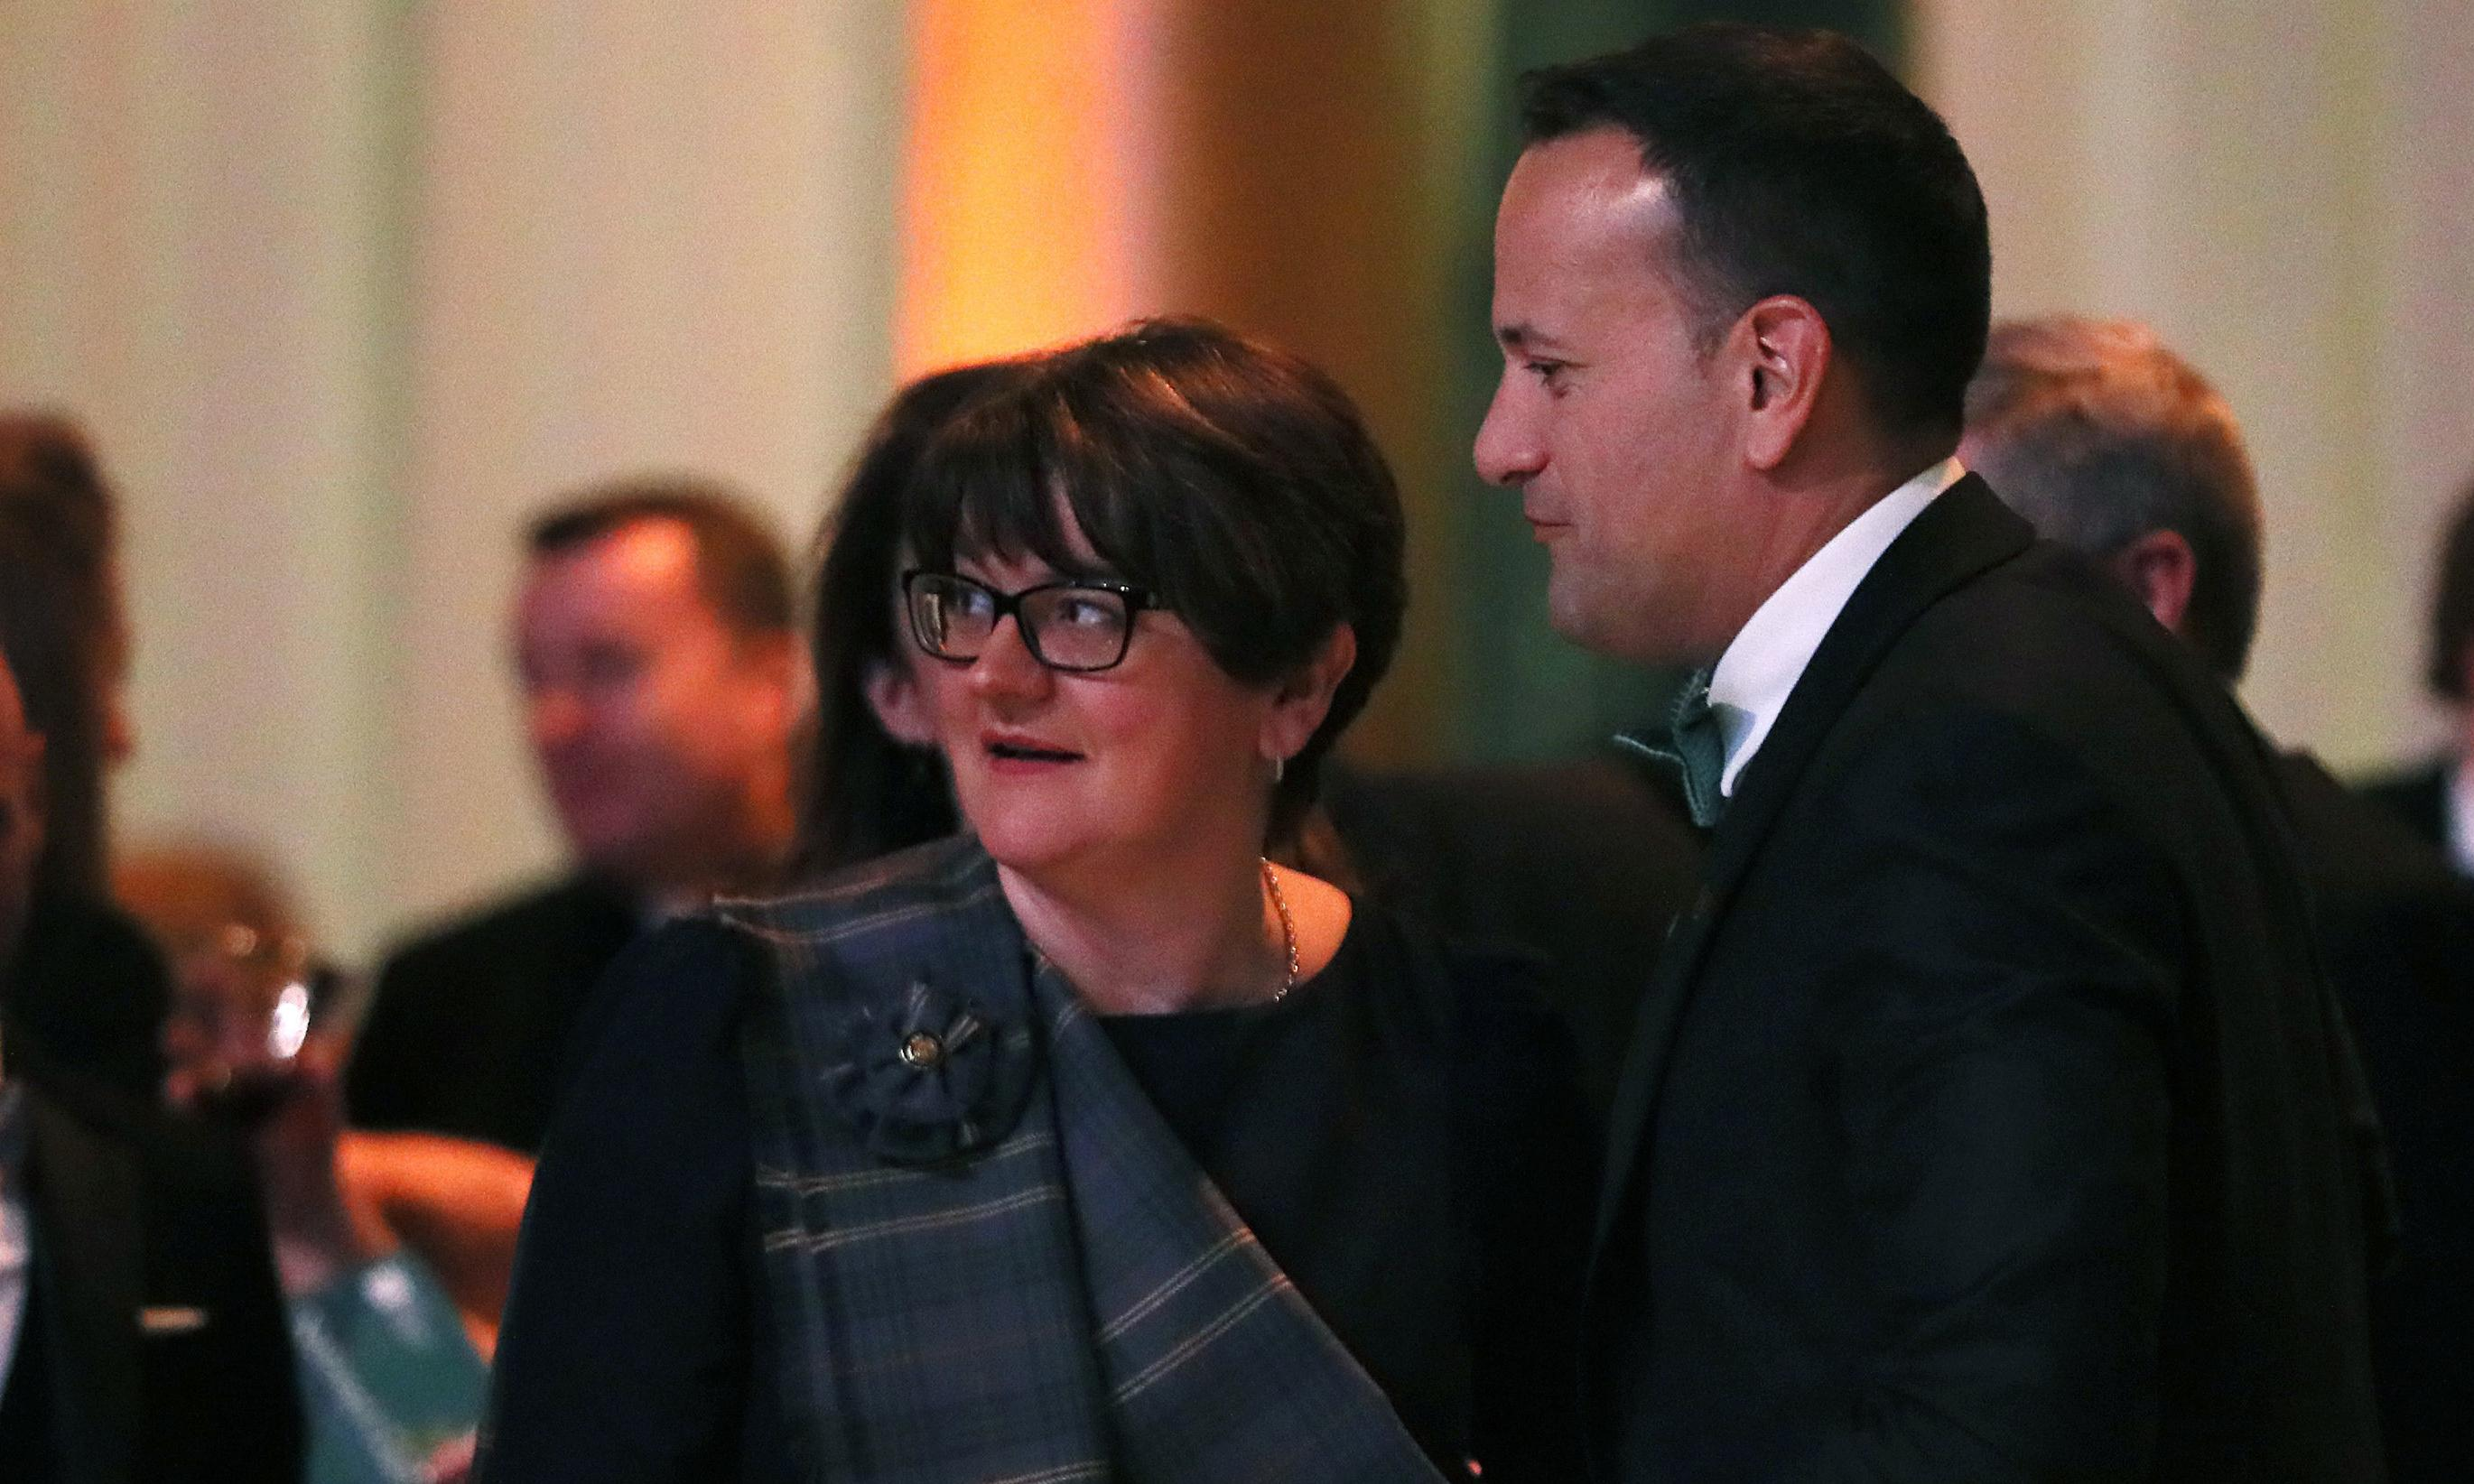 The DUP's Brexit victories put the future of the union at risk